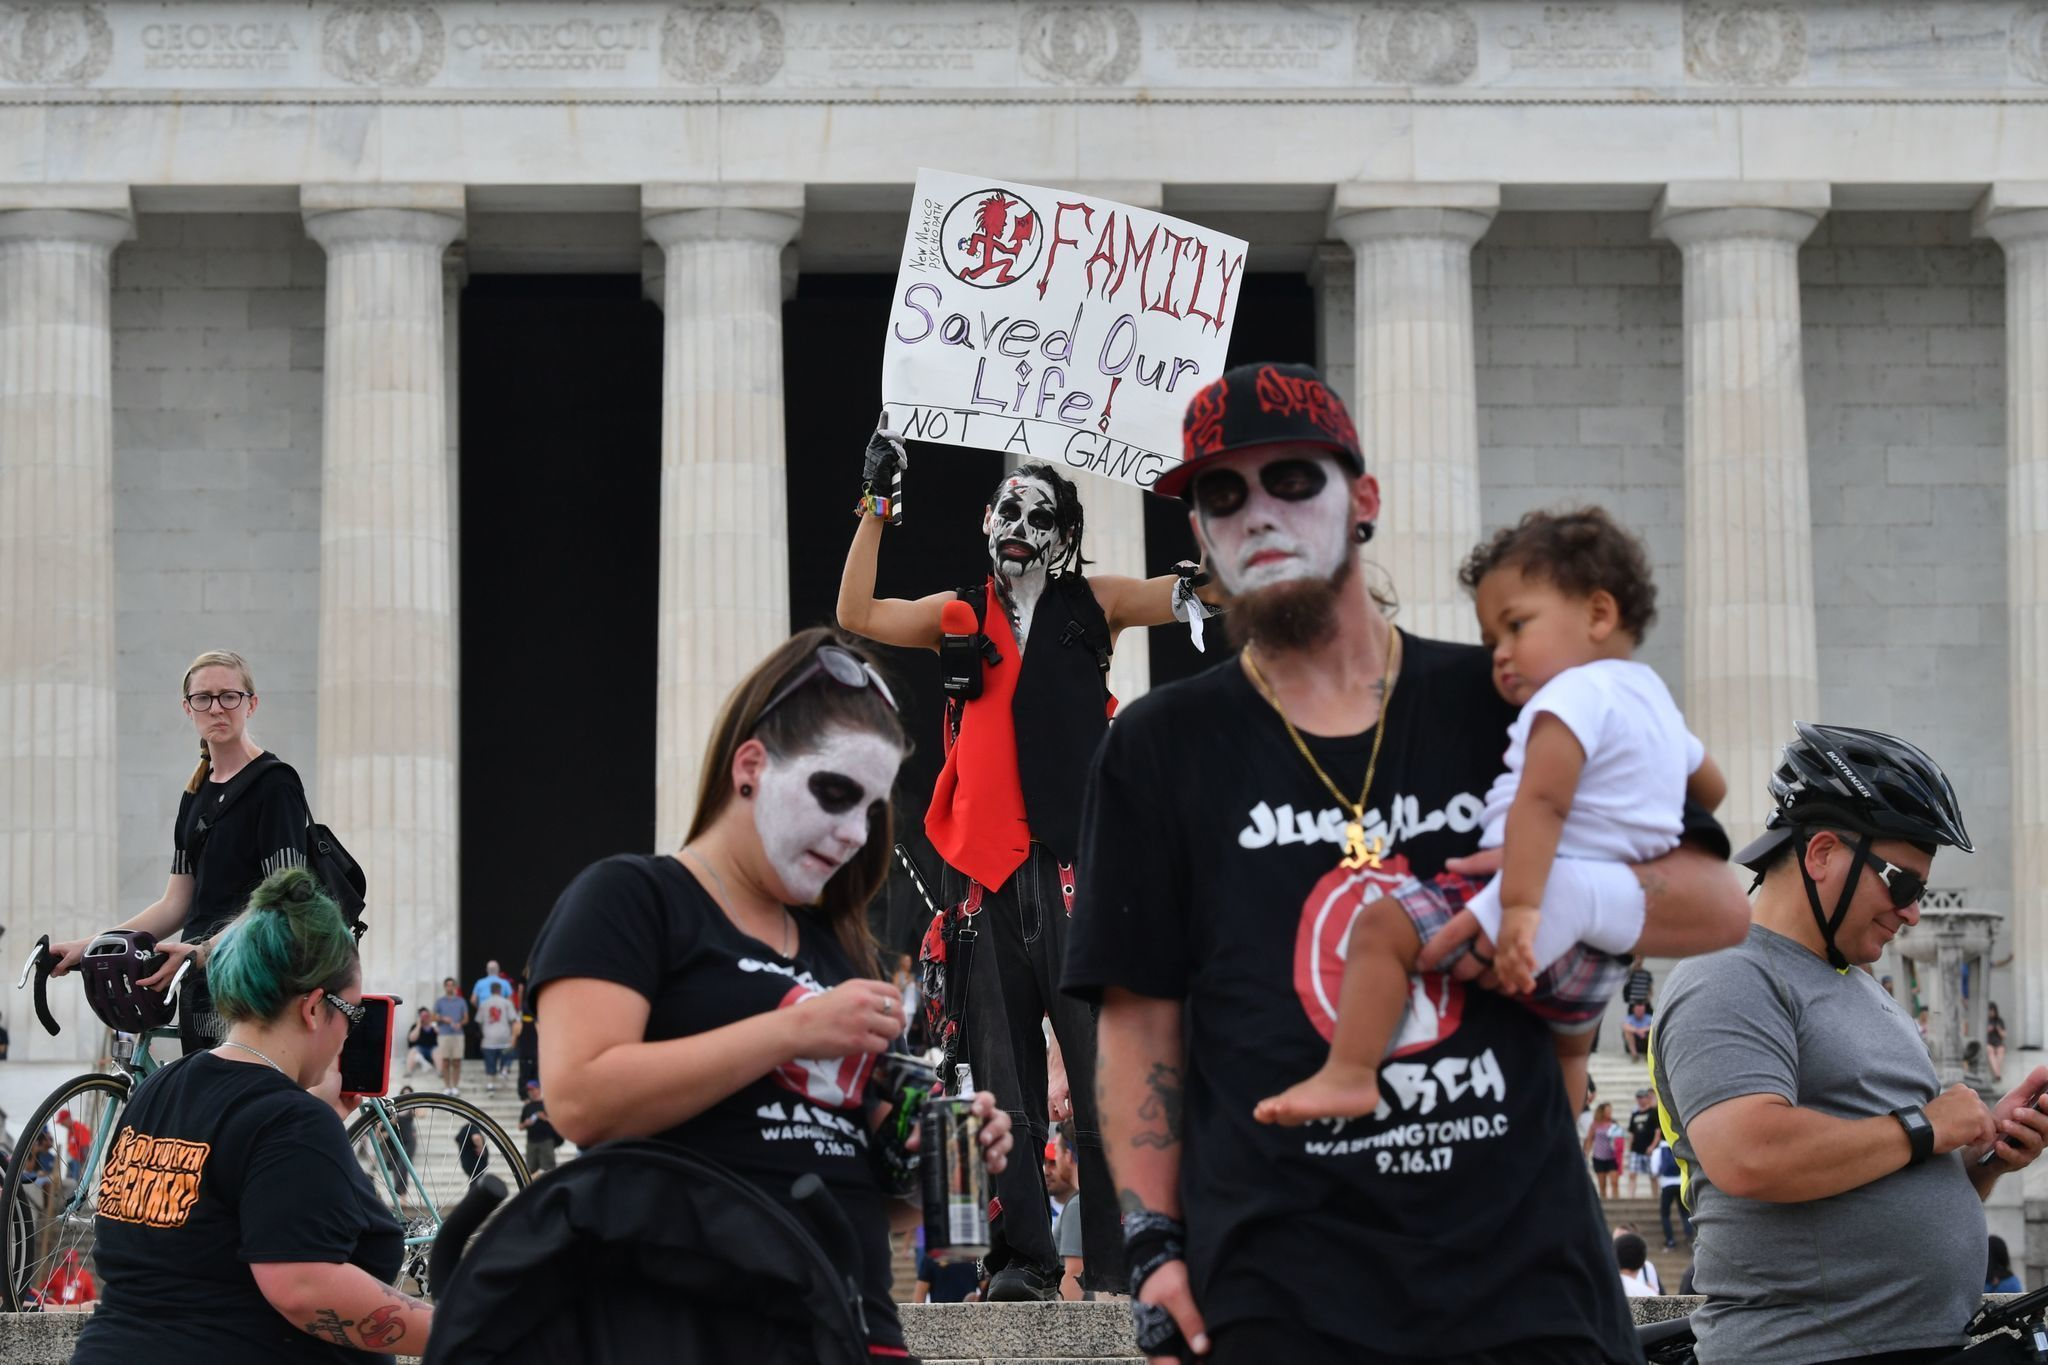 Pro-Trump rally draws hundreds, outnumbered by Juggalos ...